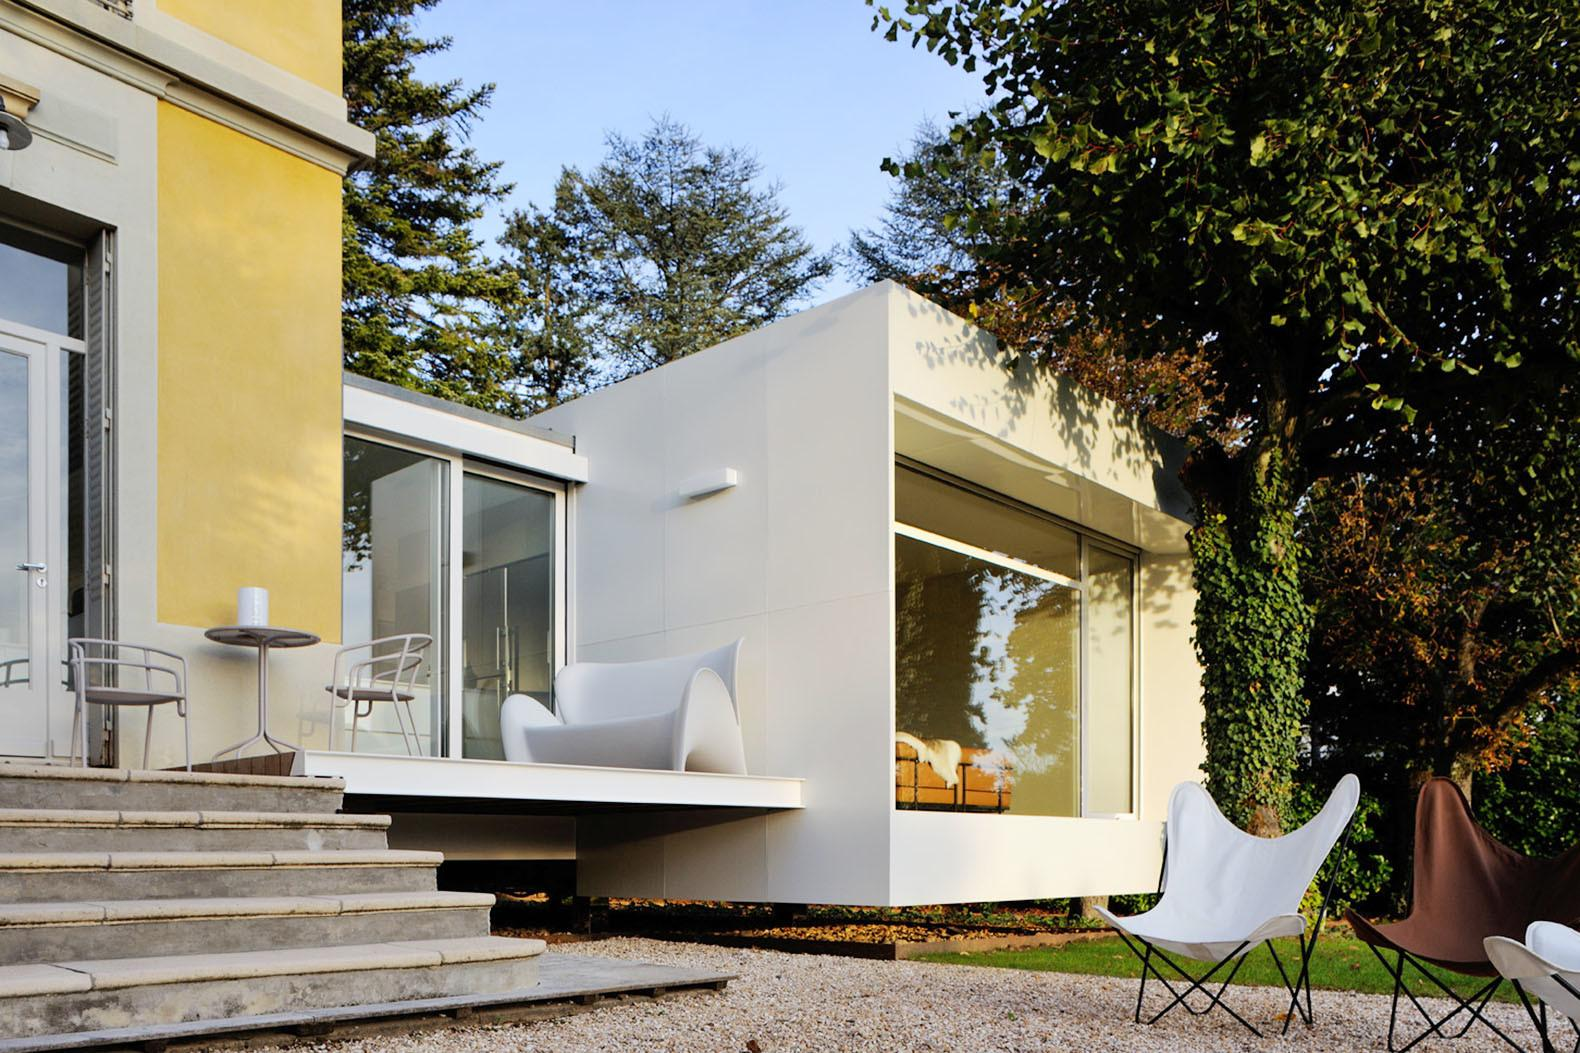 Tiny Floating Cube Extends Charming 19th Century House